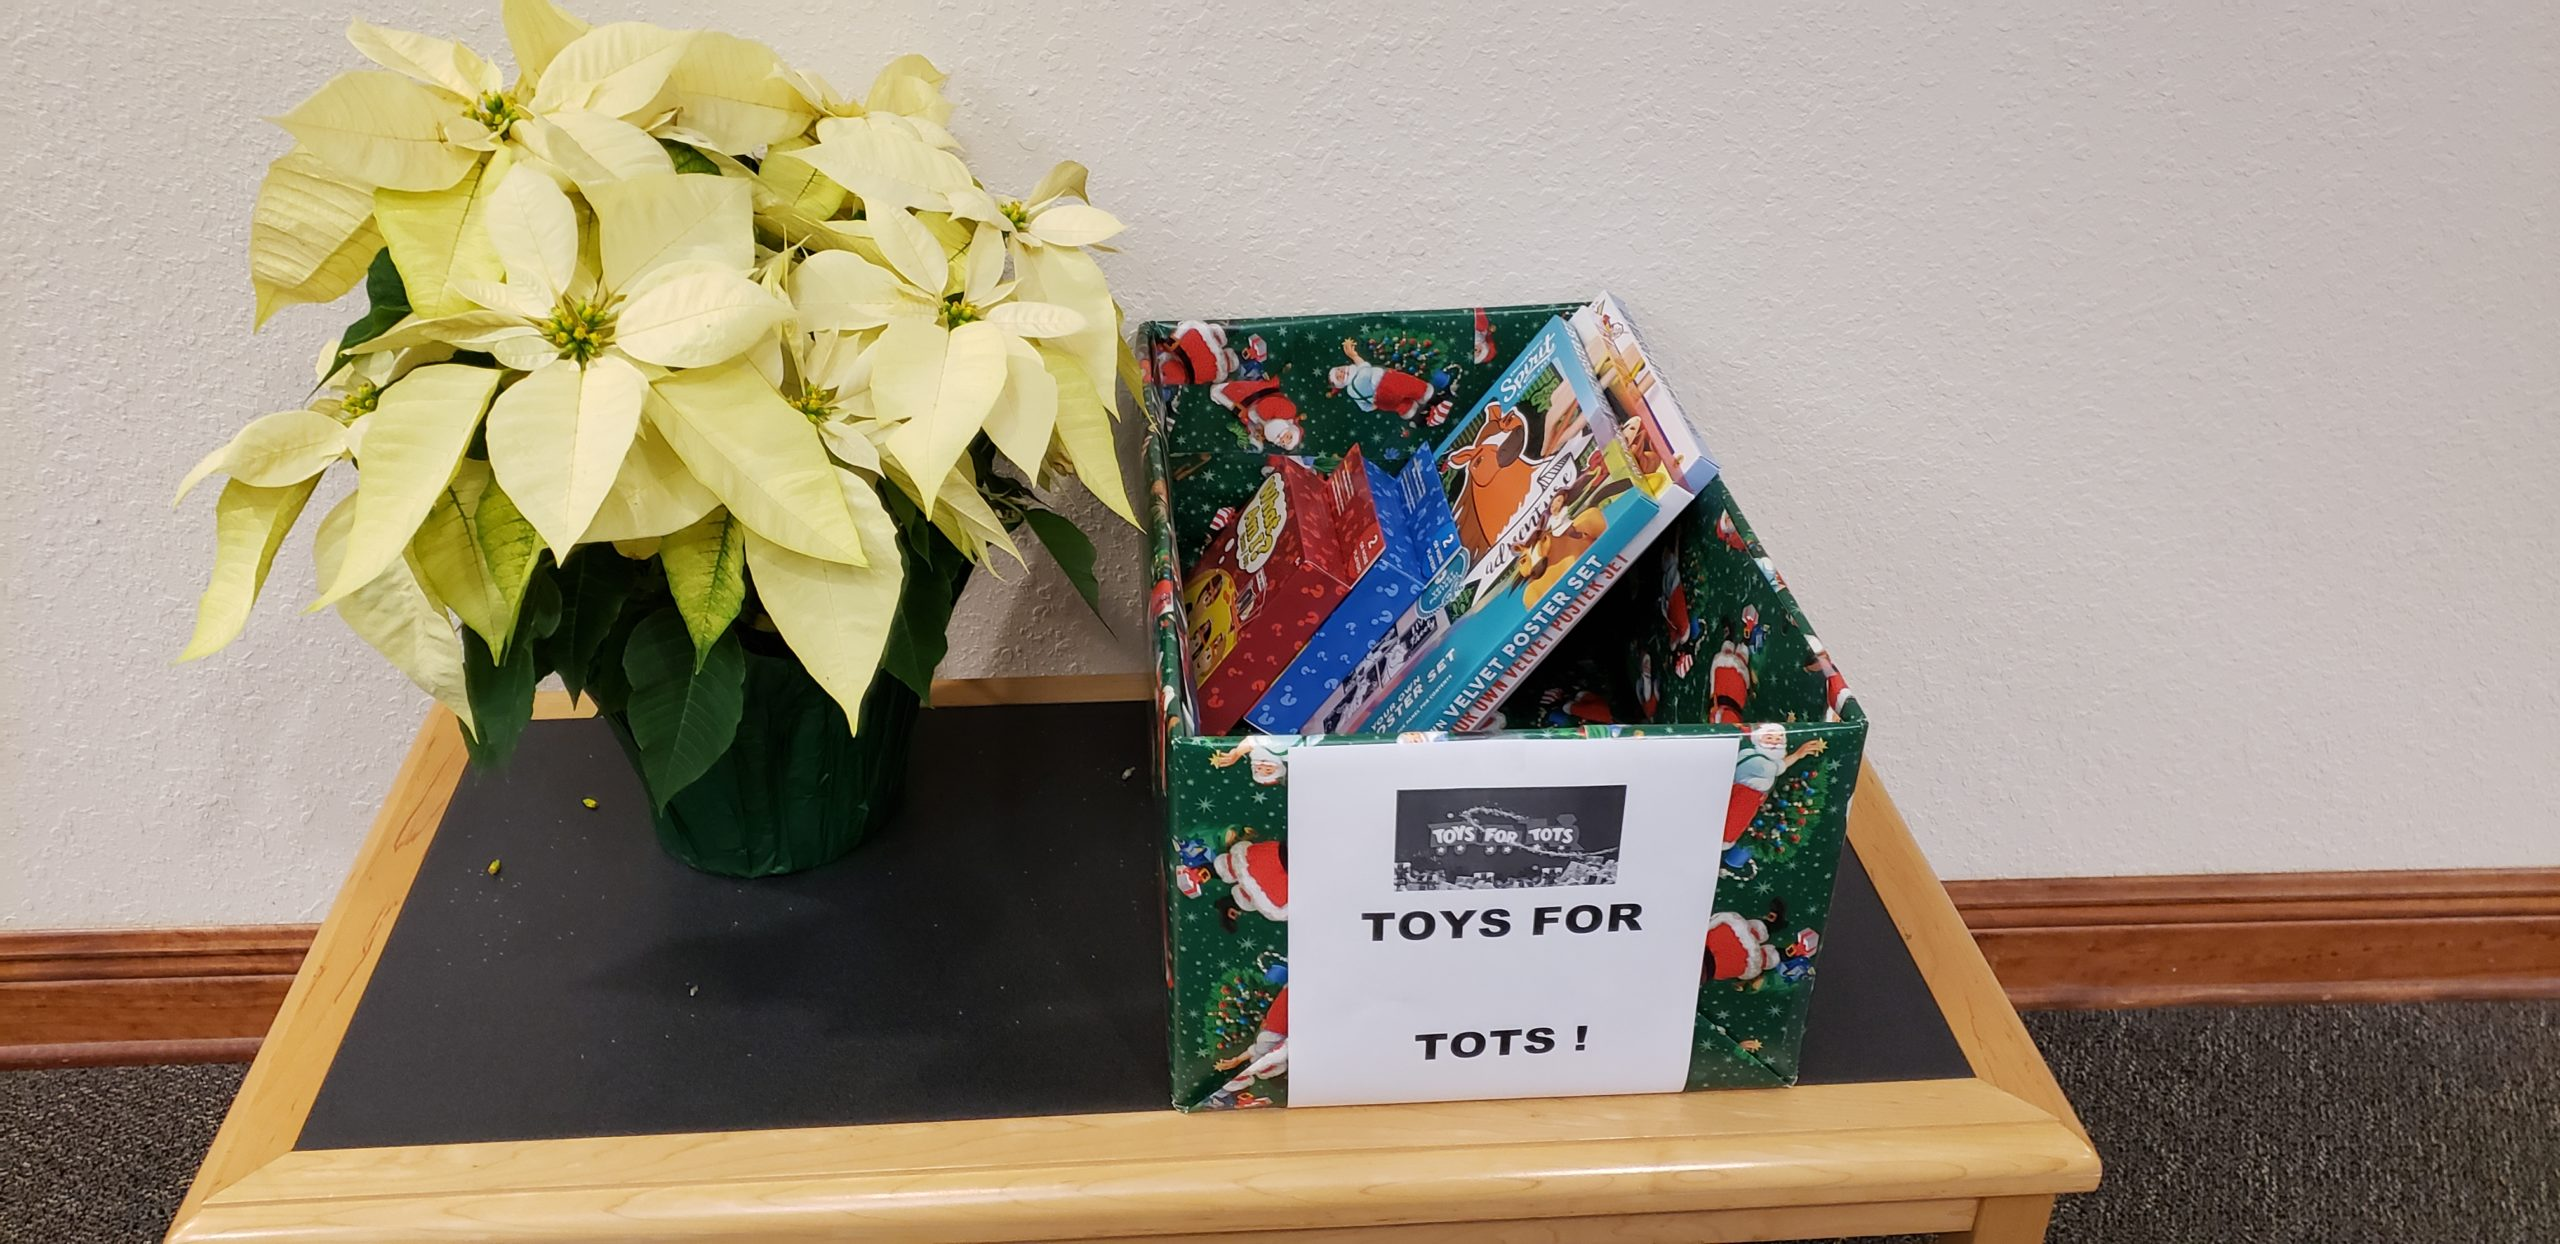 12-12-2019 Toys for Tots